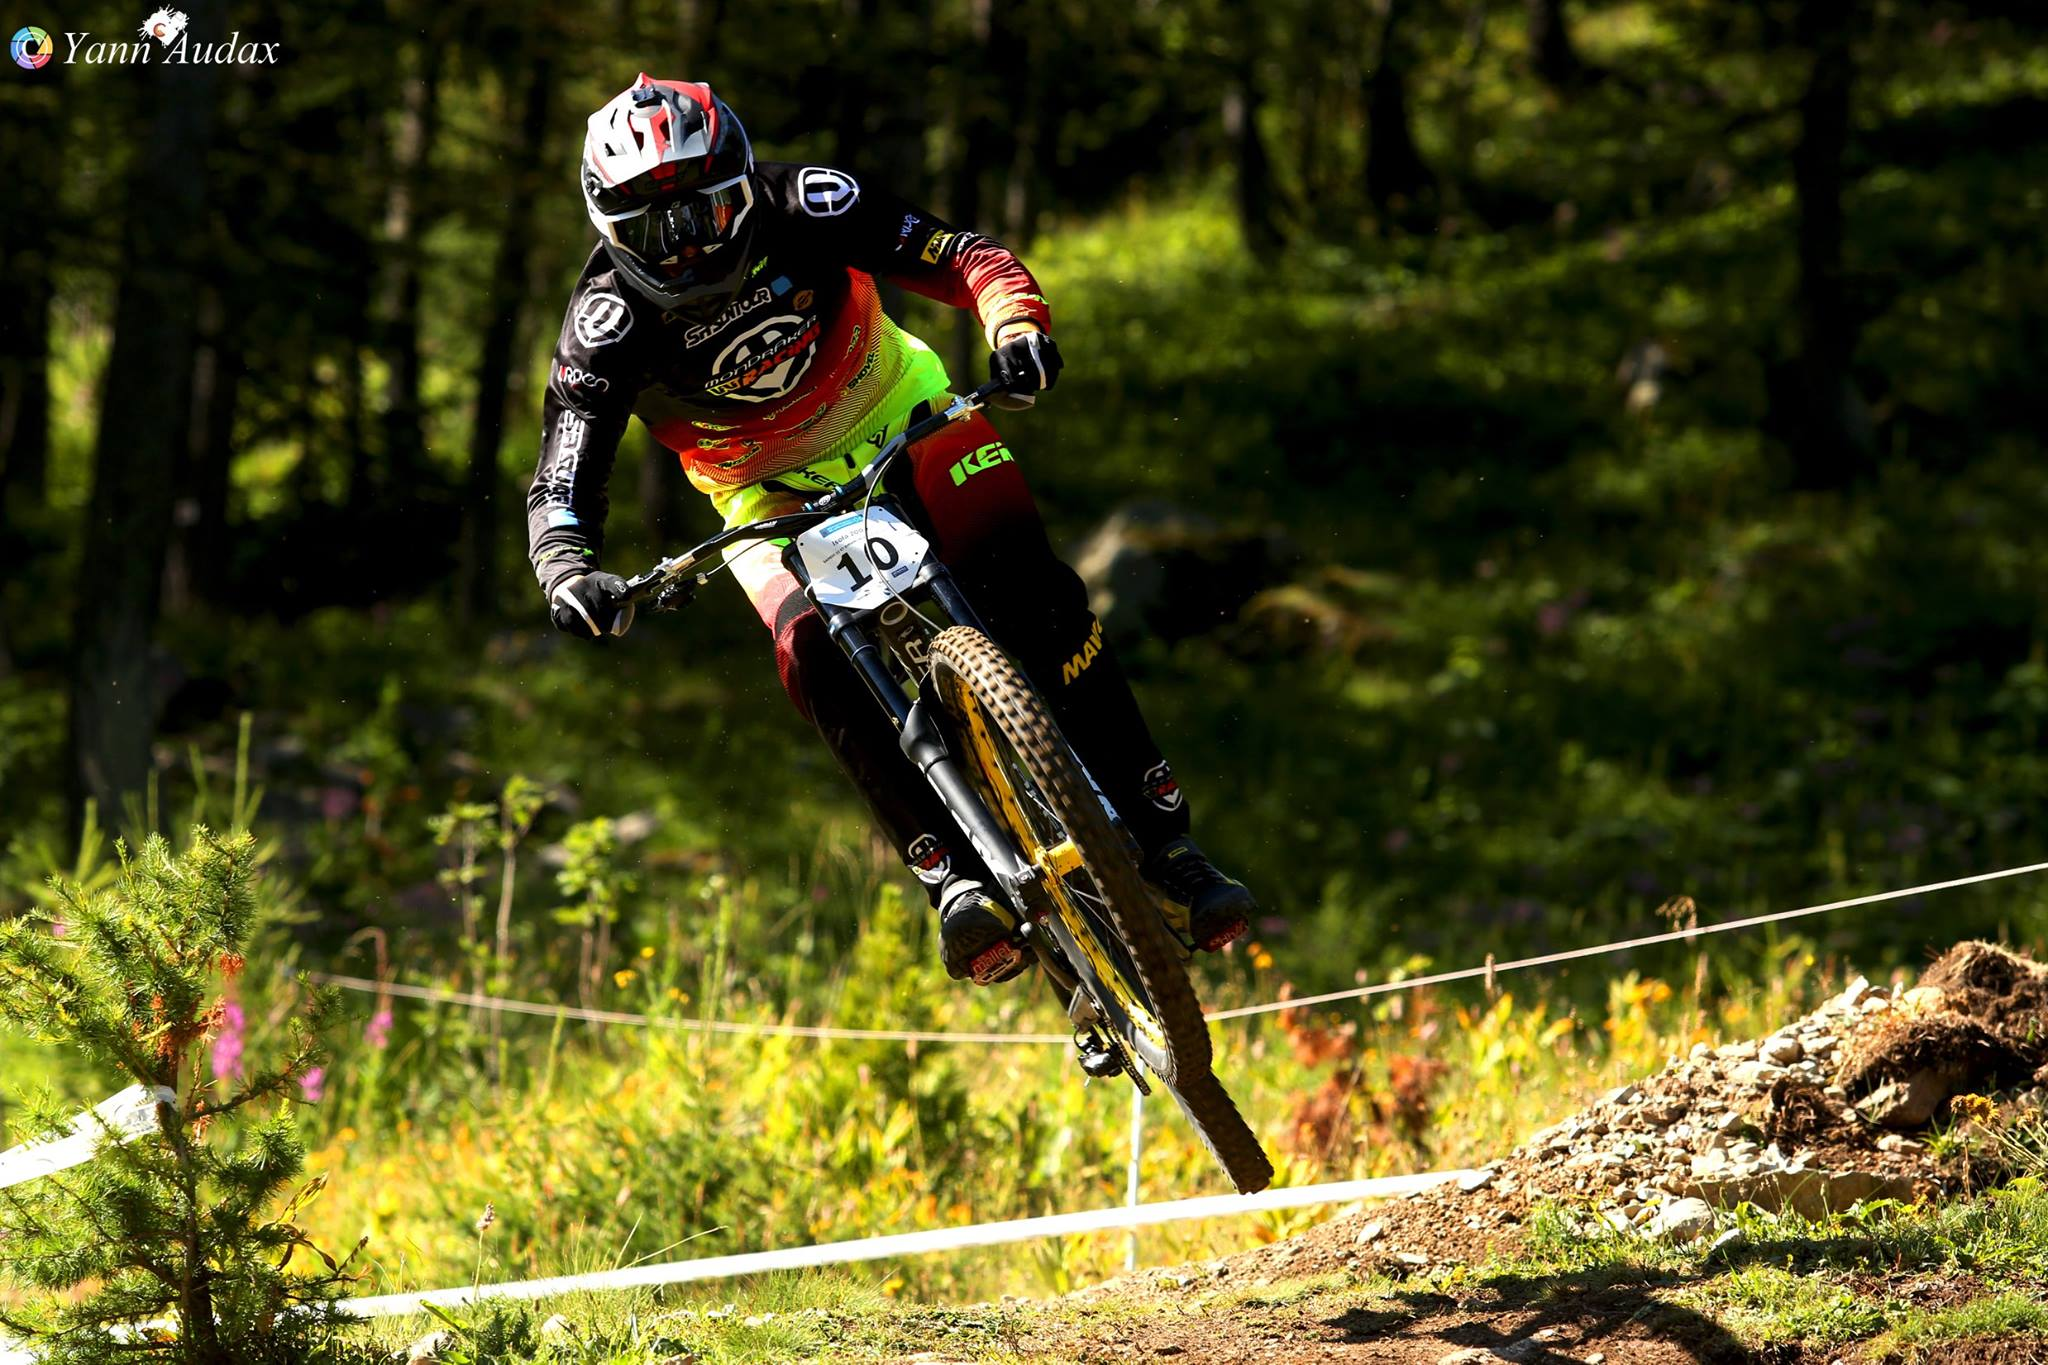 dh isola 2000 2017_kevin marry_photo yann audax